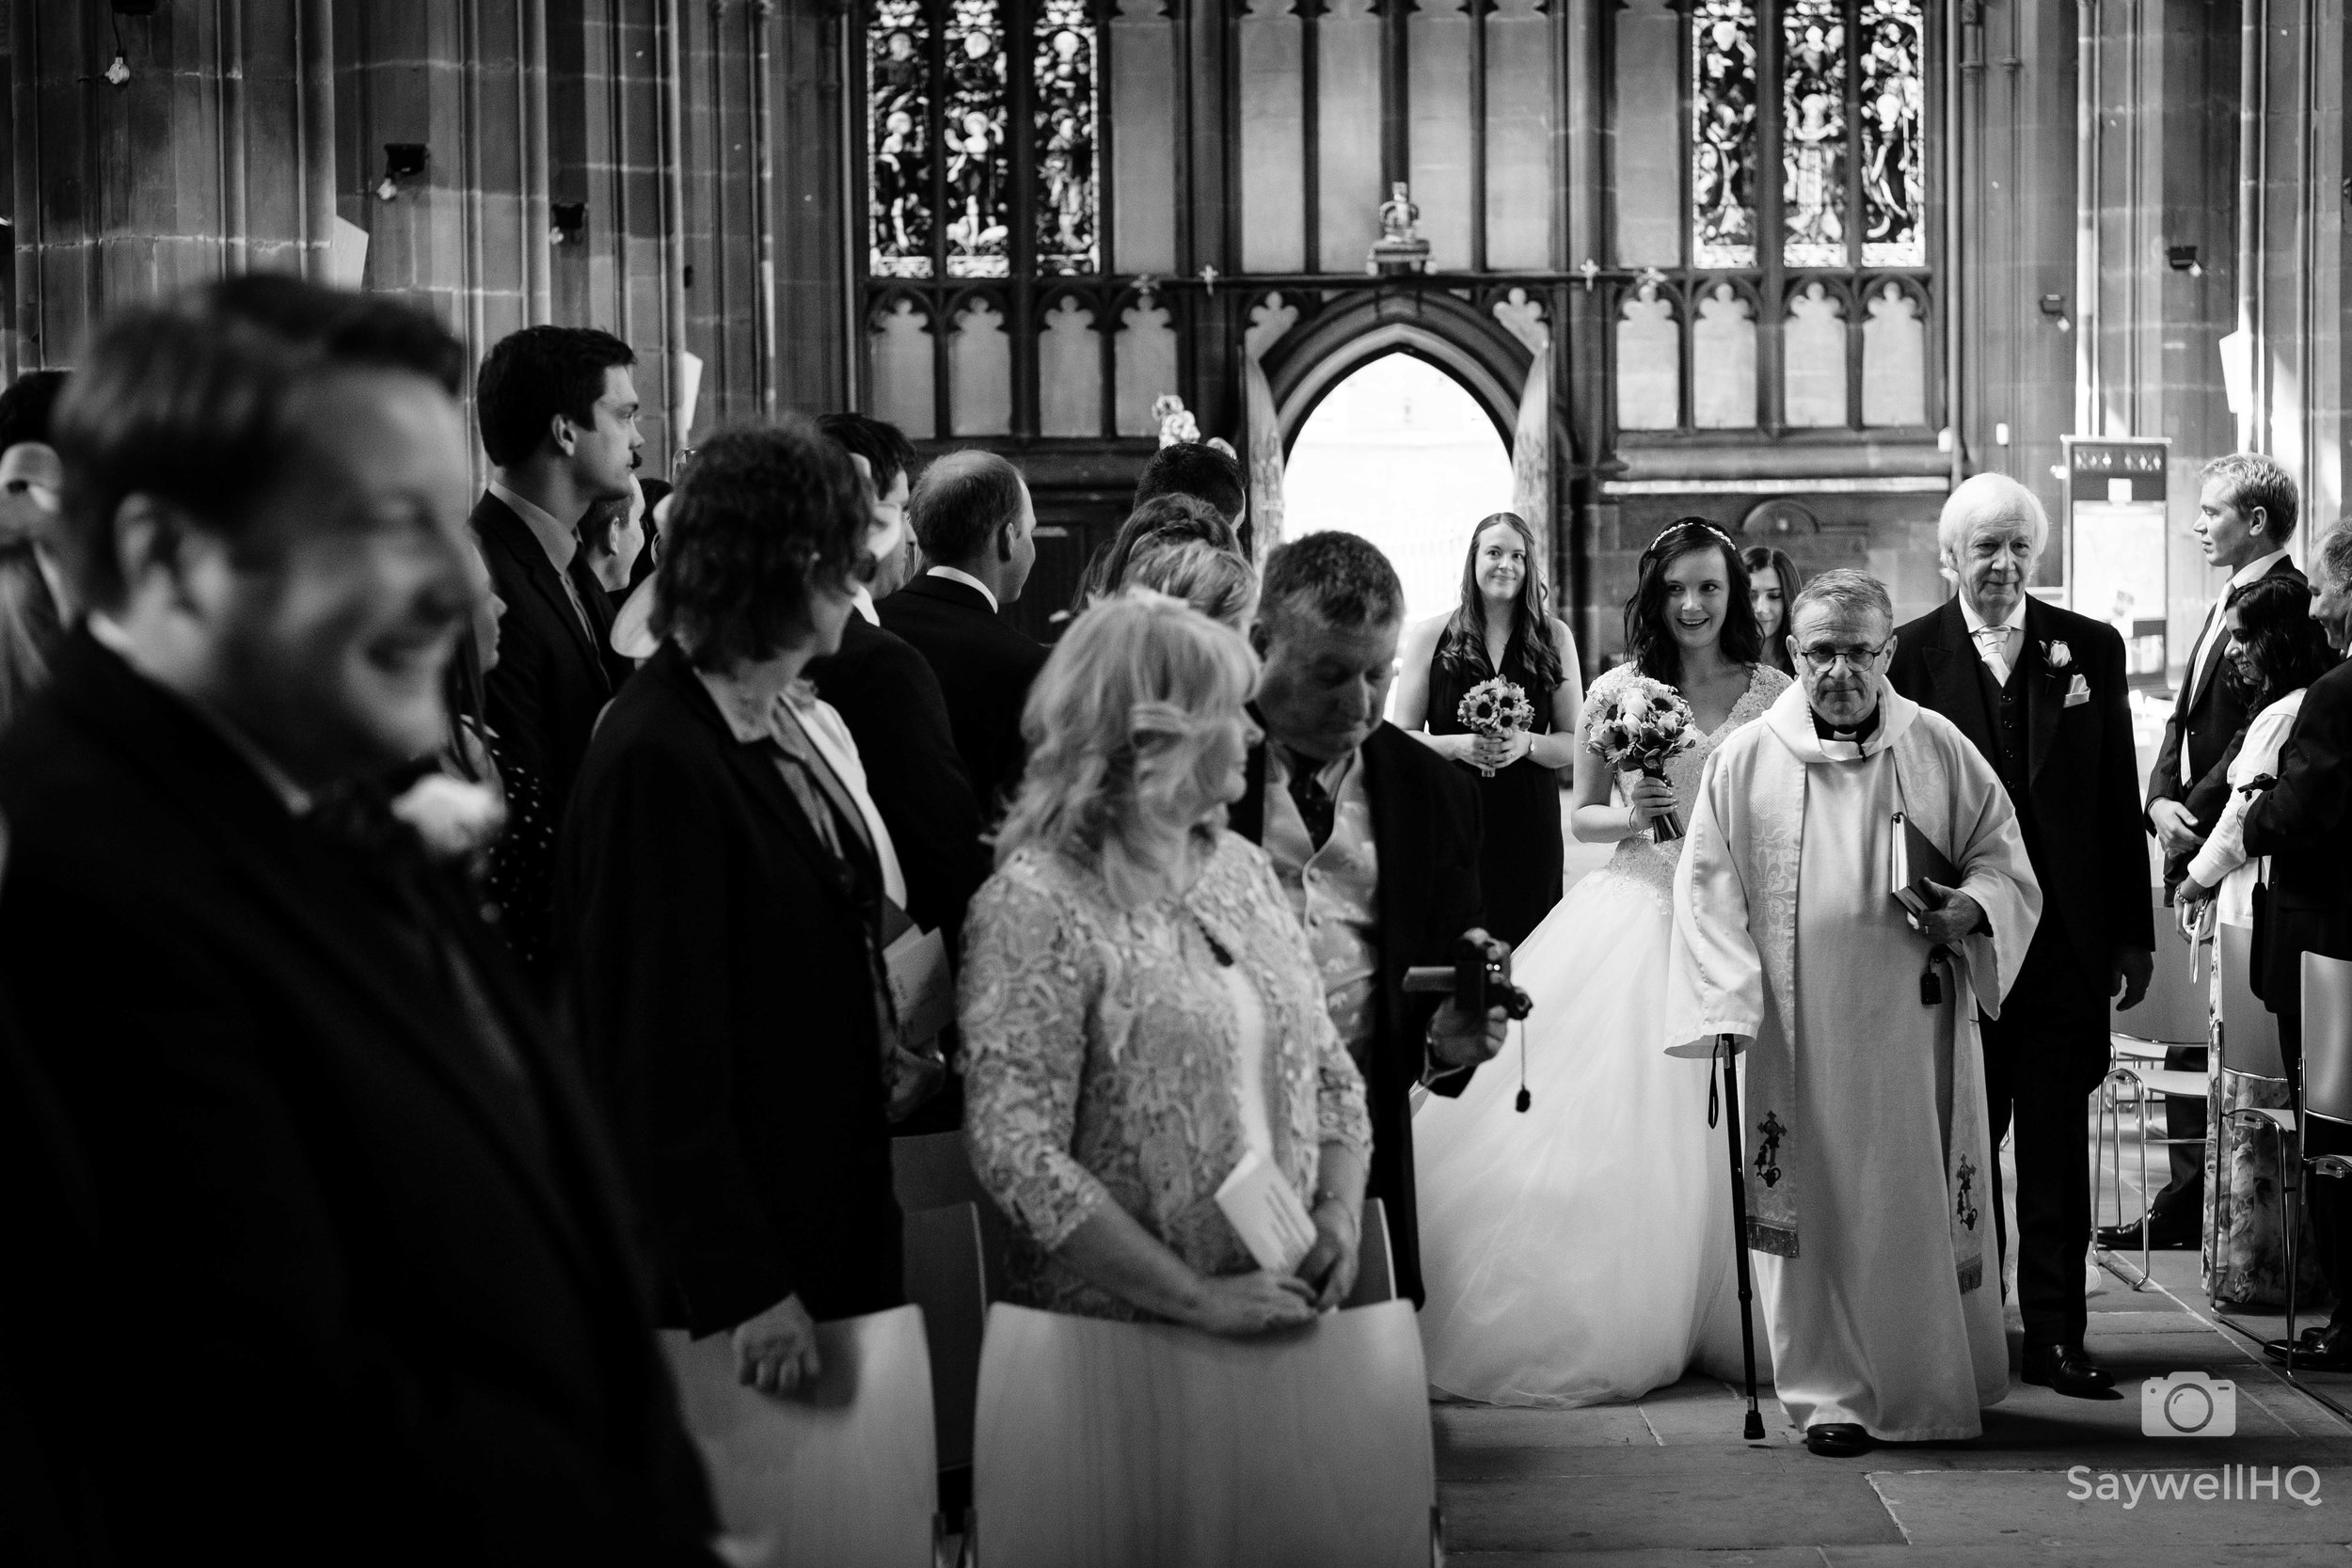 Wedding Photography at St Mary's Church Nottingham + bride walking down the aisle